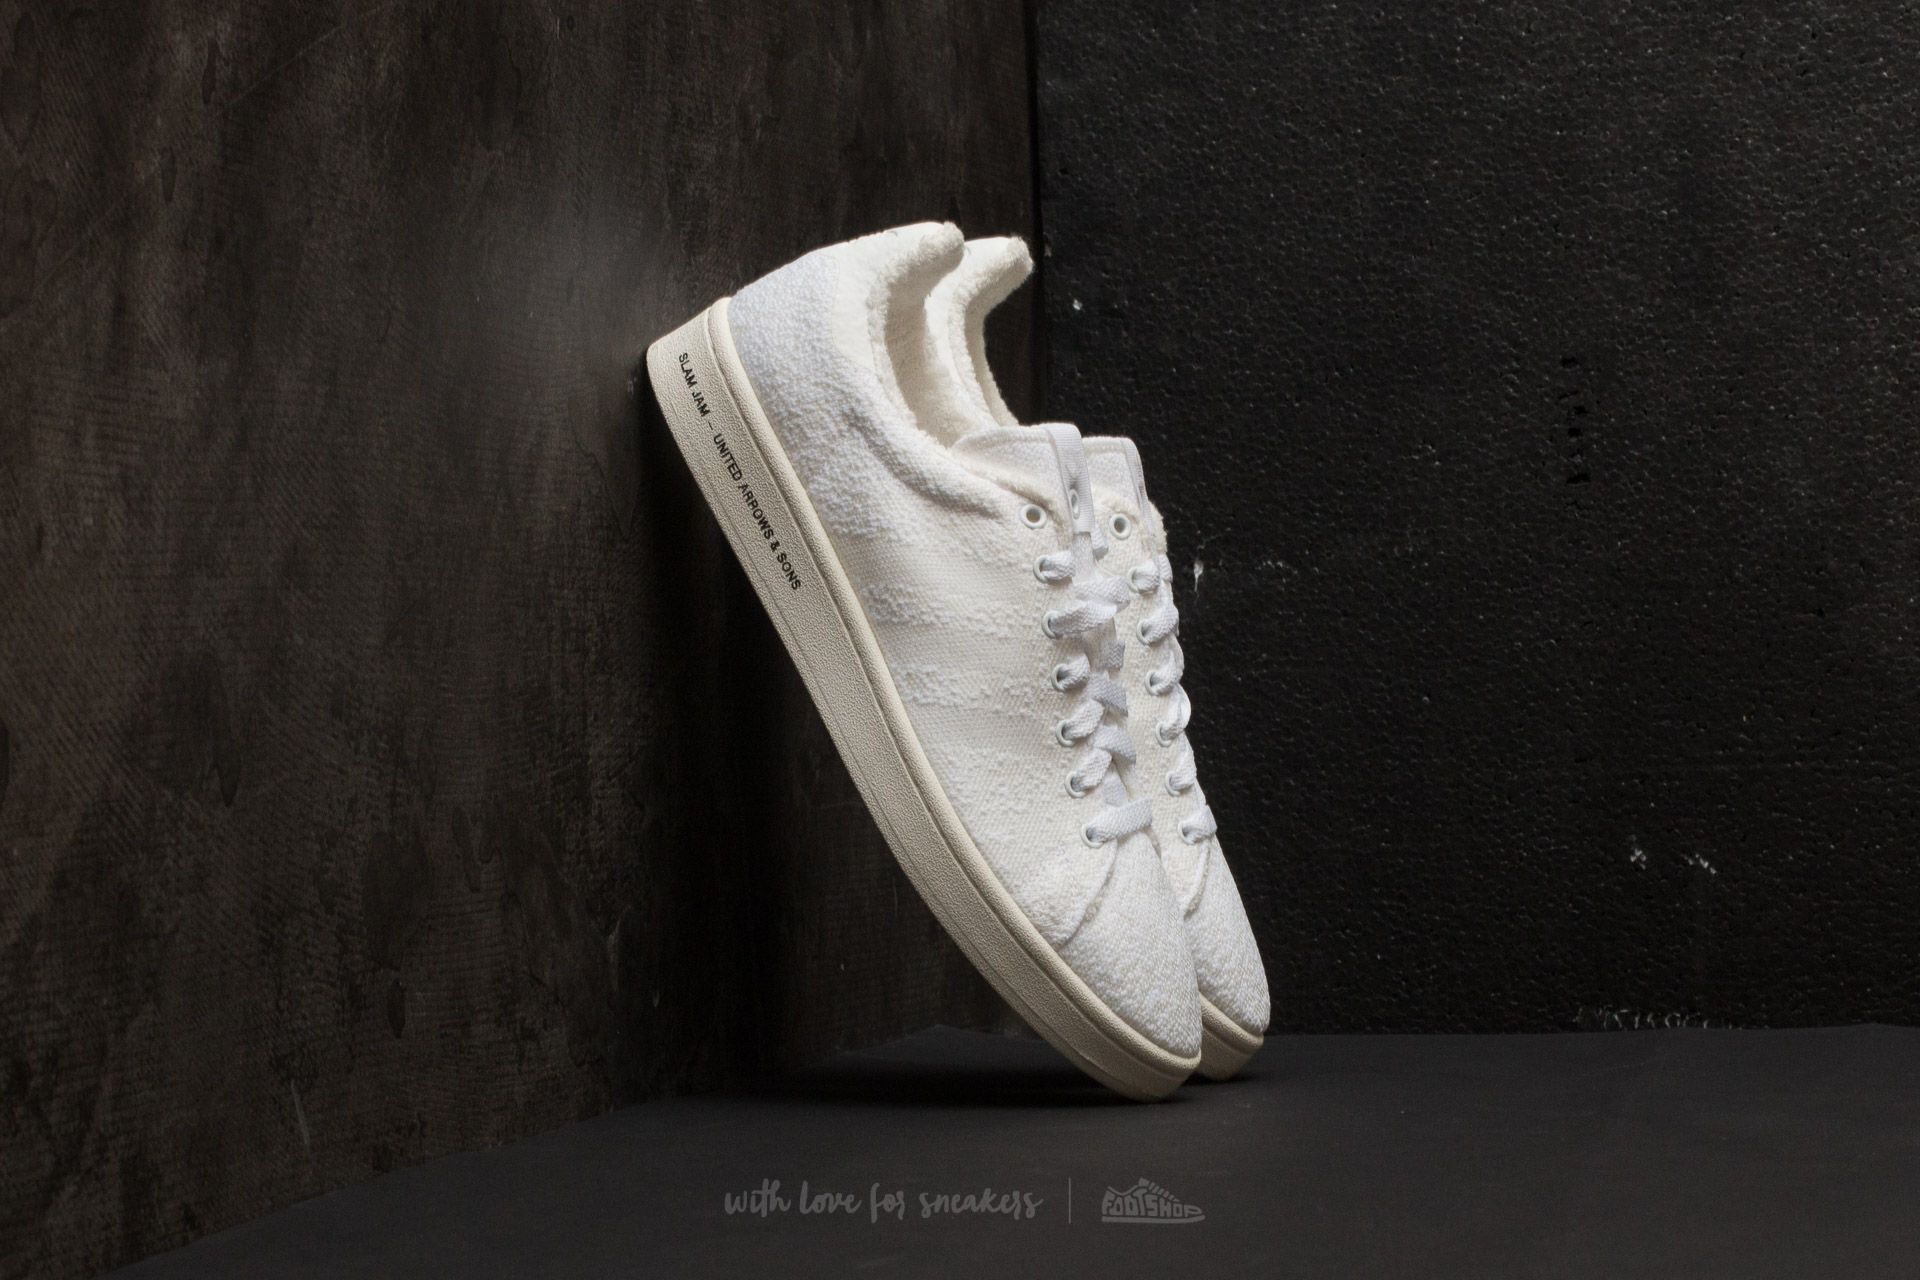 adidas Consortium SE United Arrows & Sons x Slam Jam Campus Footwear White/ Footwear White/ Core White - 21029